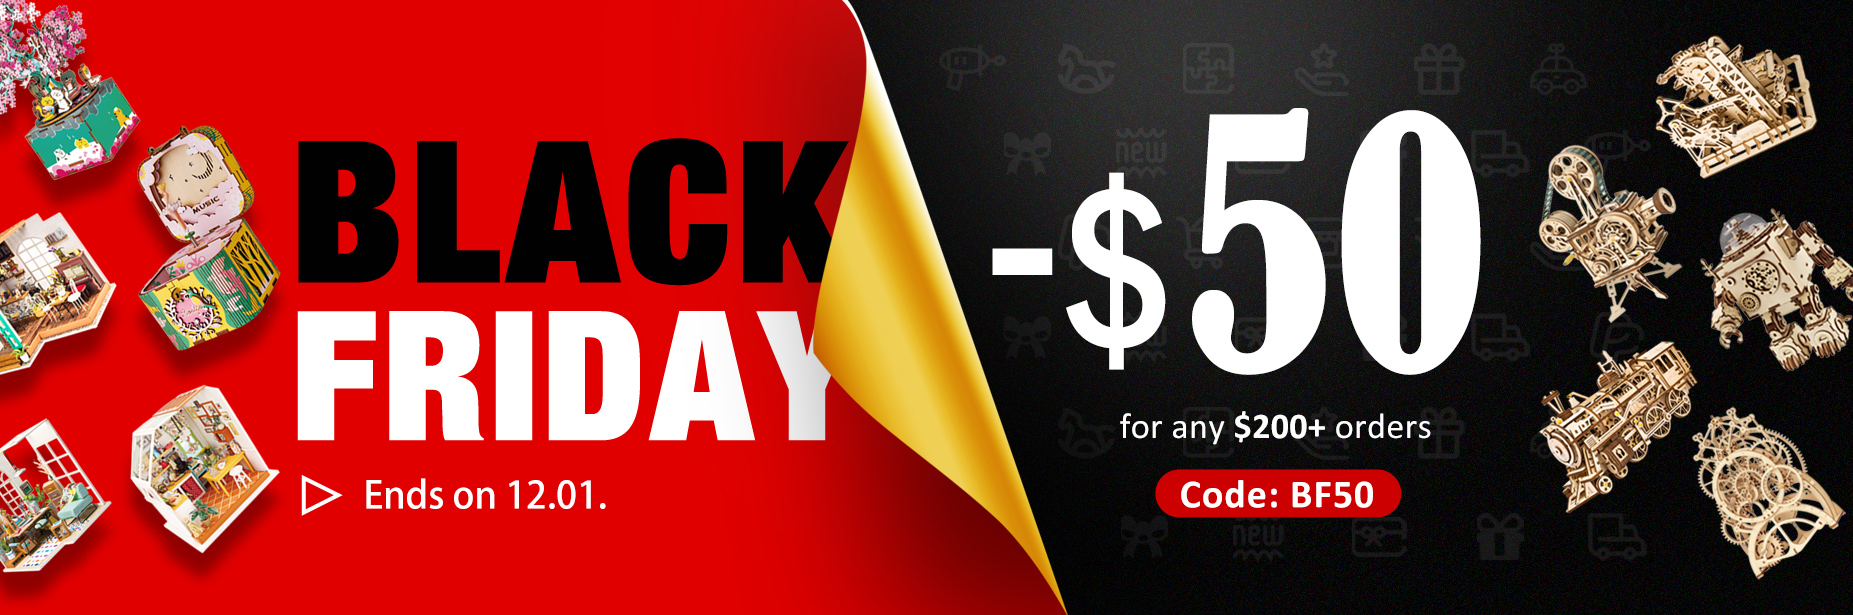 black friday gift discount 2020